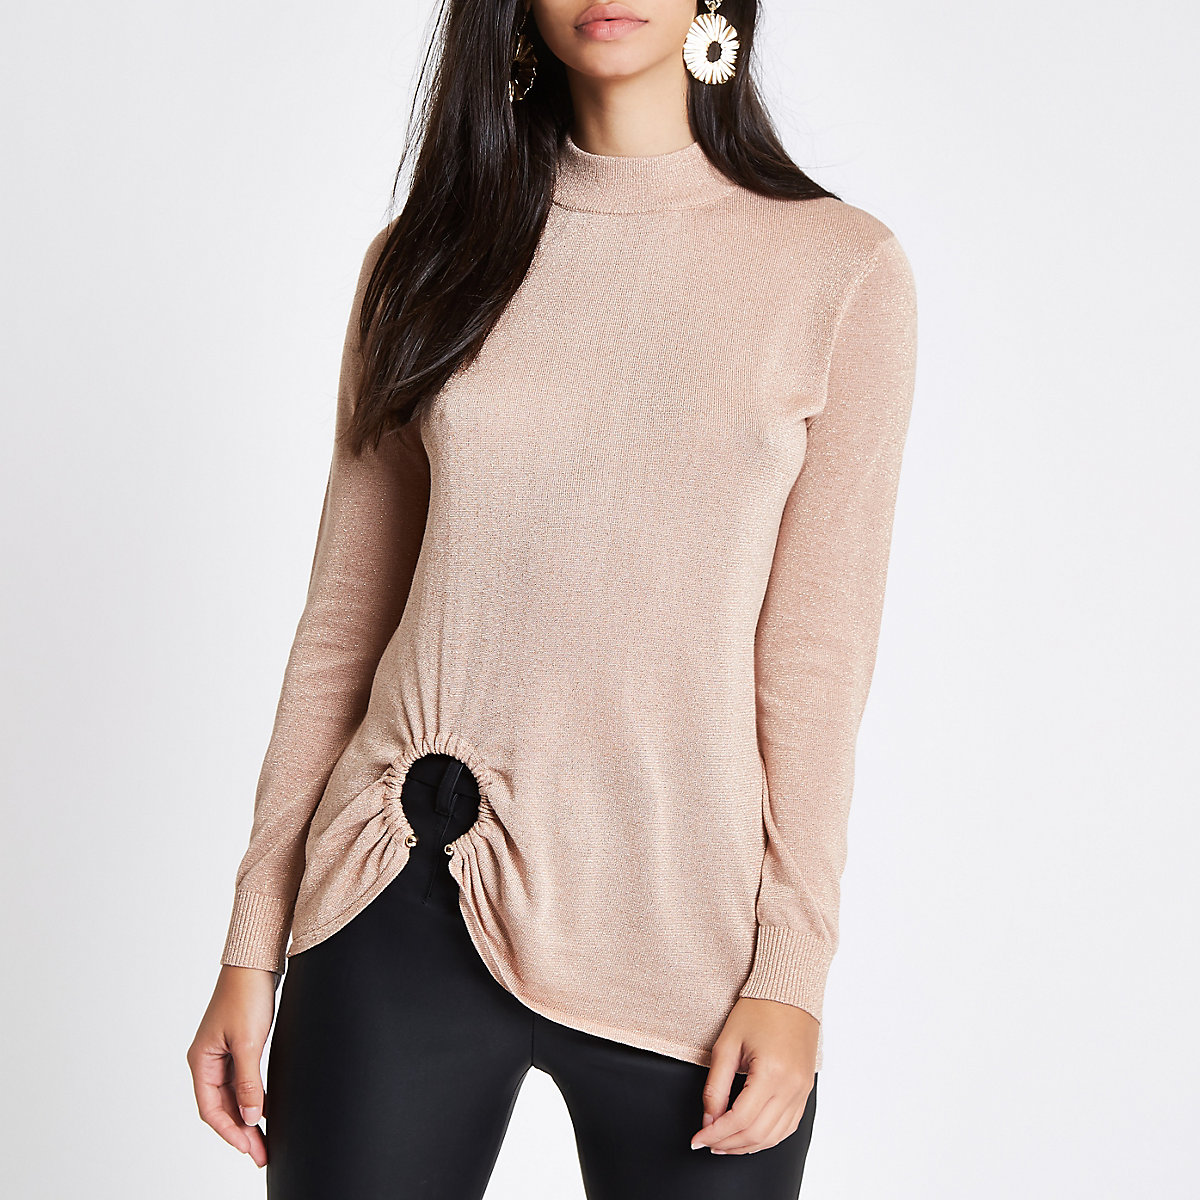 Gold knit high neck ring hem long sleeve top